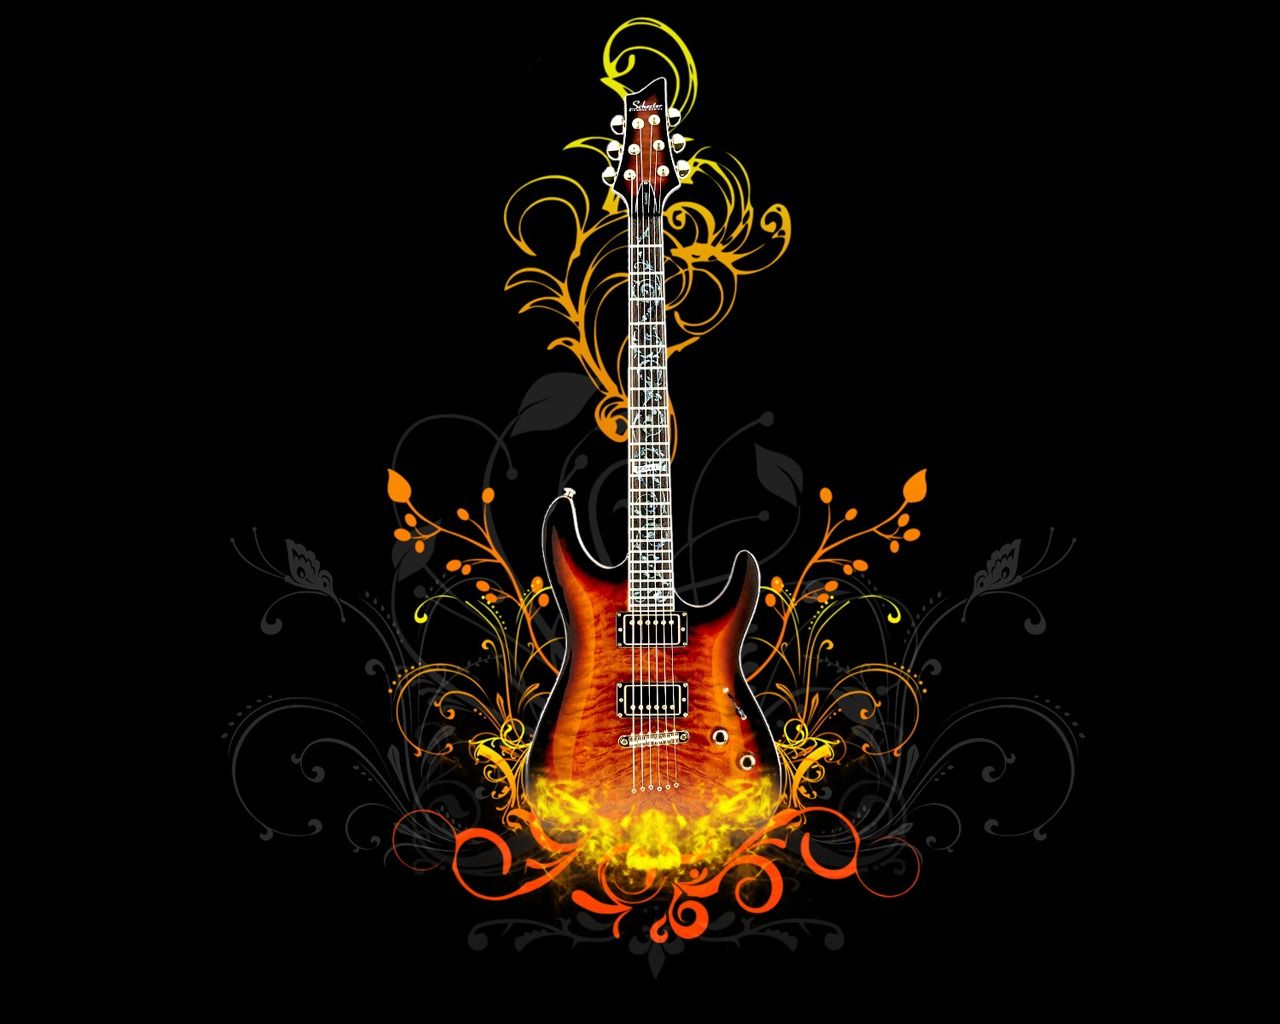 Guitar wallpapers hd backgrounds images pics photos free 1280 guitar wallpapers hd backgrounds images pics photos free 12801024 guitar wallpapers voltagebd Choice Image